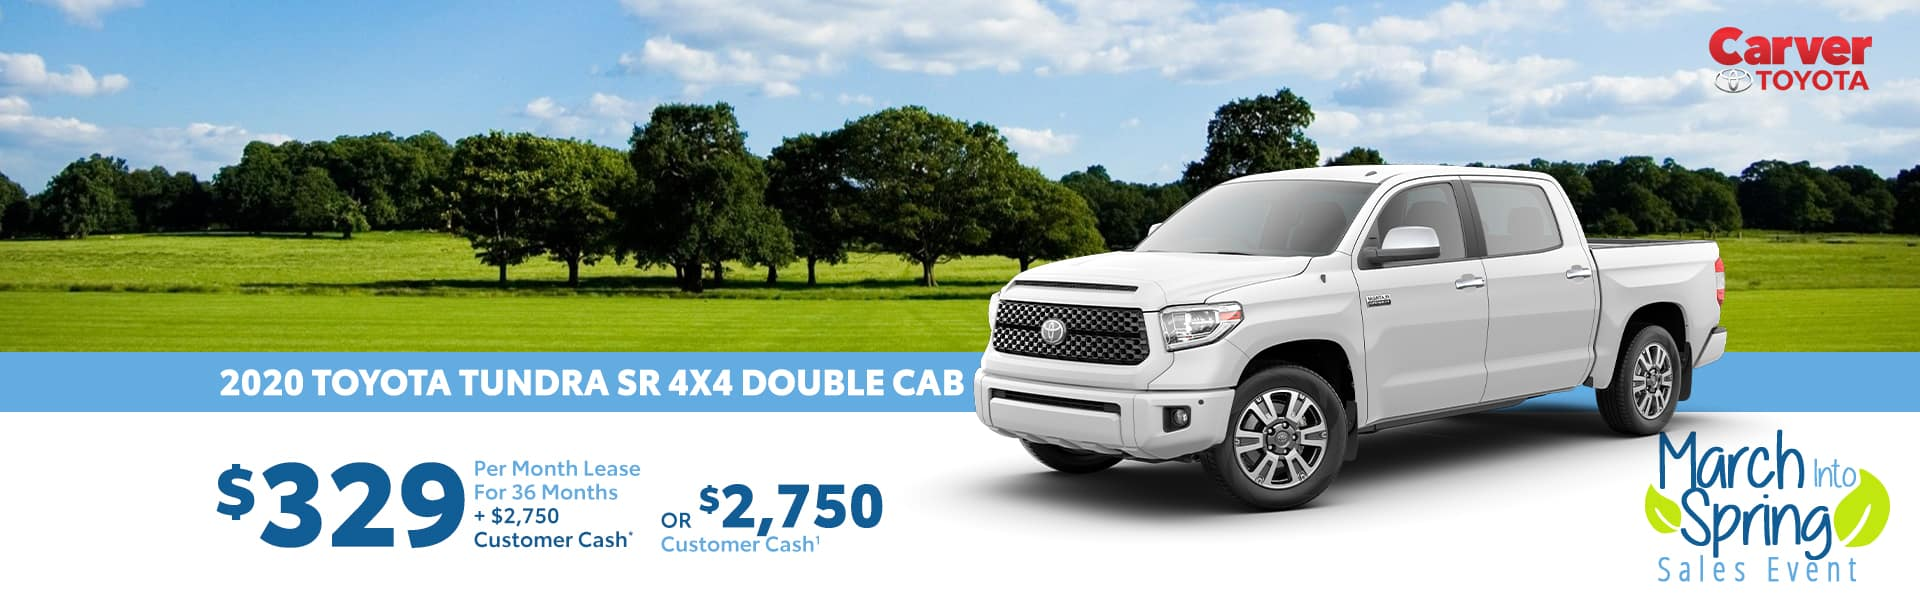 Lease a New Tundra for $329 a month near Columbus, Indiana